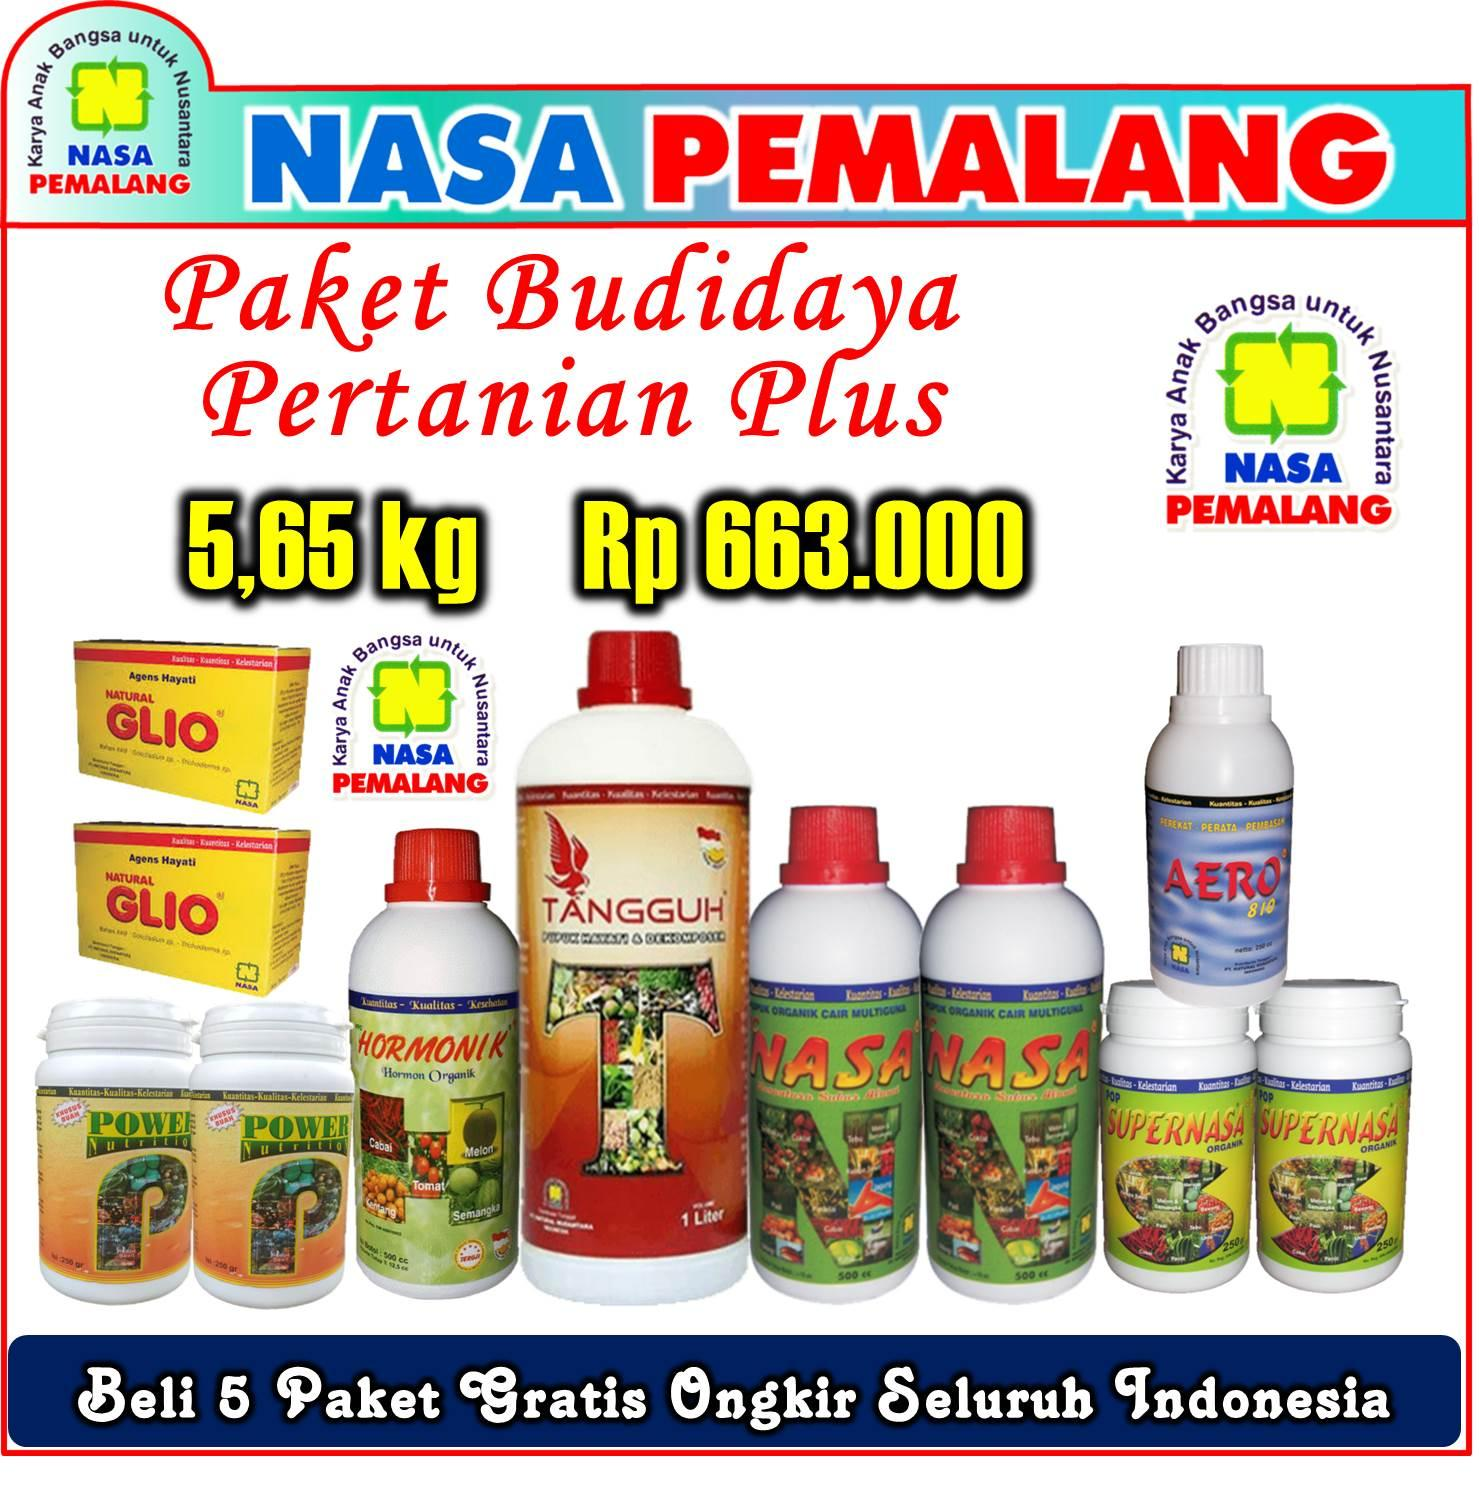 PAKET BUDIDAYA PERTANIAN PLUS TANGGUH DEKOMPOSER POWER NUTRITION SUPERNASA POC NASA HORMONIK GLIO AERO